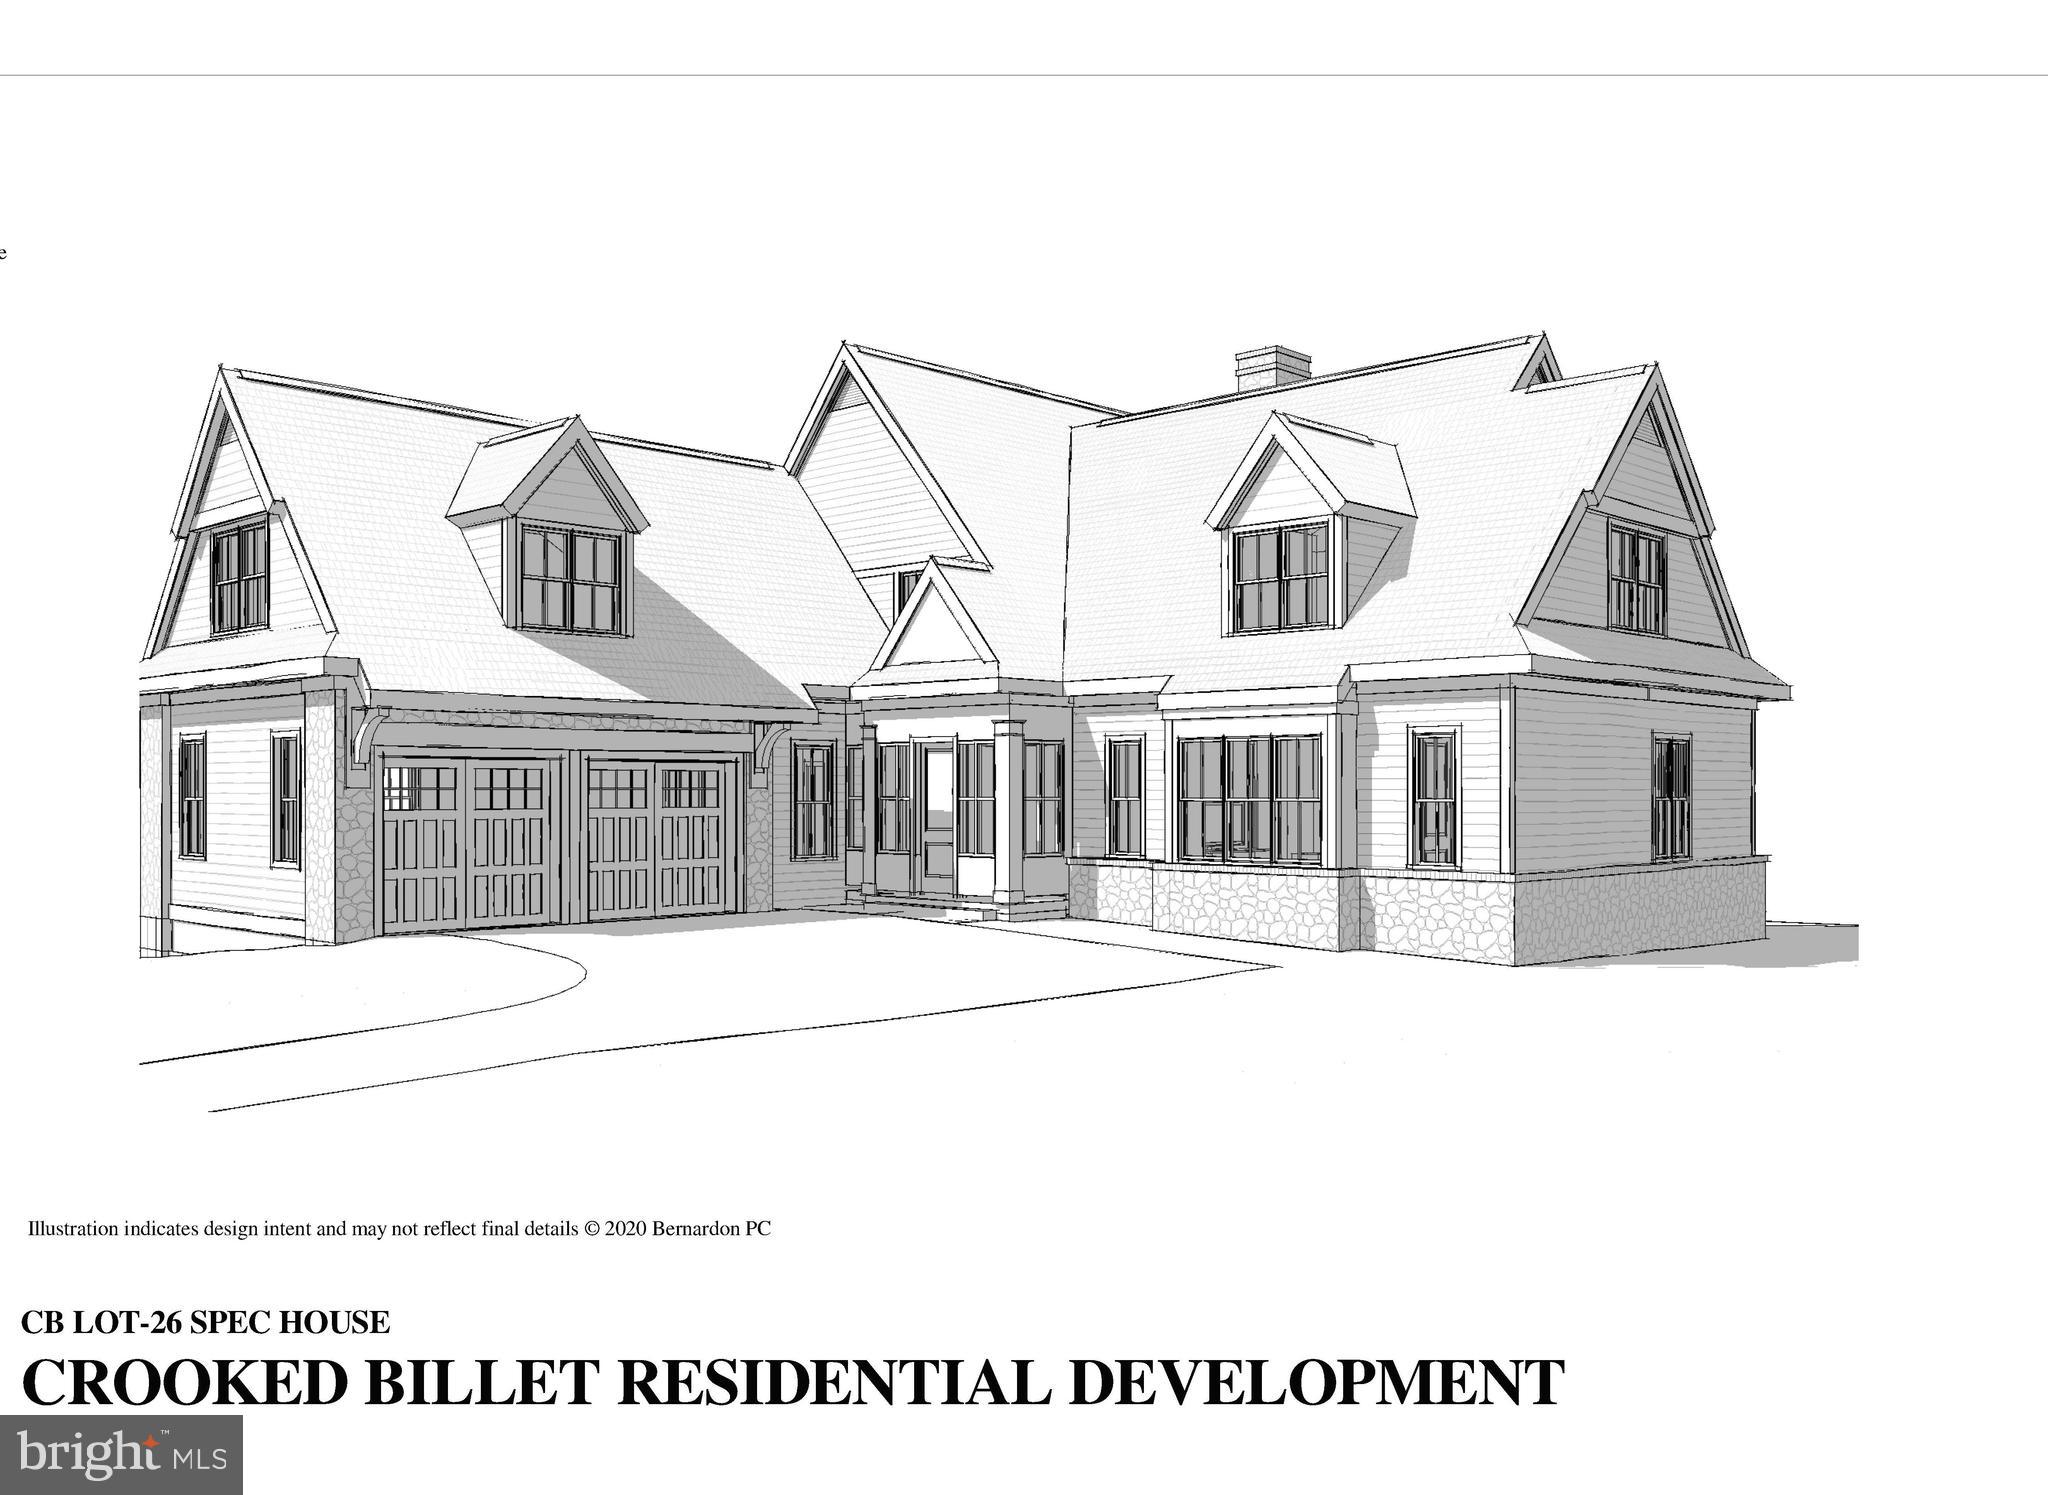 """November 2020 Delivery!!!  This is downsized 55+ living at its finest!  Designed to provide a first floor daily living lifestyle, yet with 2nd floor bedrooms for when your kids or friends come in for a visit.   Stone and cement siding exteriors, Pella Artisan Oversized Windows, 10 foot celings on first floor, finished on site 3"""" hardwoods, Paradise custom cabinets throughout, custom moldings, Kohler fixtures, stone countertops, rear bluestone patio and full footprint 8.5' ceiling poured concrete basement.  Enter through the custom front door into the spacious foyer and step into the light filled living space thanks to oversized windows and 10 foot ceilings.  The open floor concept spans 37 feet from kitchen to a welcoming great room, complete with an oversized fireplace.  Off of the great room is the well planned Master Suite with oversized bath and walk in closets.  Enter from the Master Suite or foyer into the spacious study.  Rounding out the first floor off of the kitchen is an oversized mudroom, laundry - also accessed by the 2 car oversized attached garage.  Access the second floor from a tucked away stair case - with 2 generous bedrooms with a jack and jill bath - additional space available to add a 3rd second floor bedroom or study and/or additional baths.  Crooked Billet is a new 55 and over Luxury Home Development located in the heart of Greenville, Delaware; 30 minutes from Philadelphia and just 90 minutes from NYC and Baltimore/DC area.  This 19 home community is built  on a former 28 acre estate with thoughtfully planned 14 acres of landscaped open space and walking paths. Additional lots available with a choice from  Five sophisticated home plans all being built by renowned builder, Dewson Construction Company.  The plans and home exteriors reflect the beautiful and timeless architecture of the area and offer a range of size and functionality options for individual lifestyles. The development is a  luxury living, turn key community, giving the homeowne"""